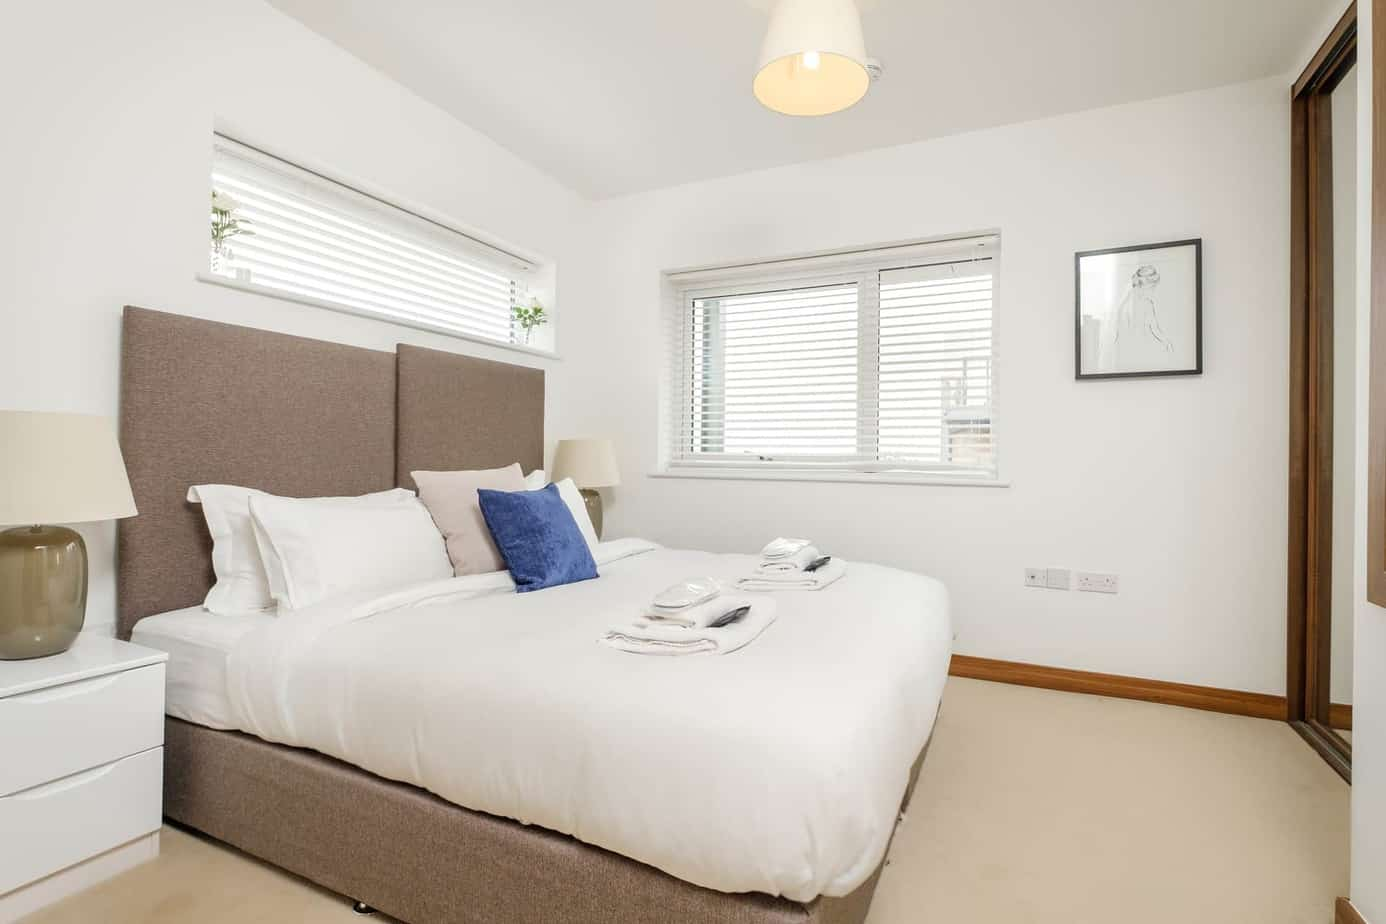 Tailored Stays grand central cambridge serviced apartment master bedroon with ensuite